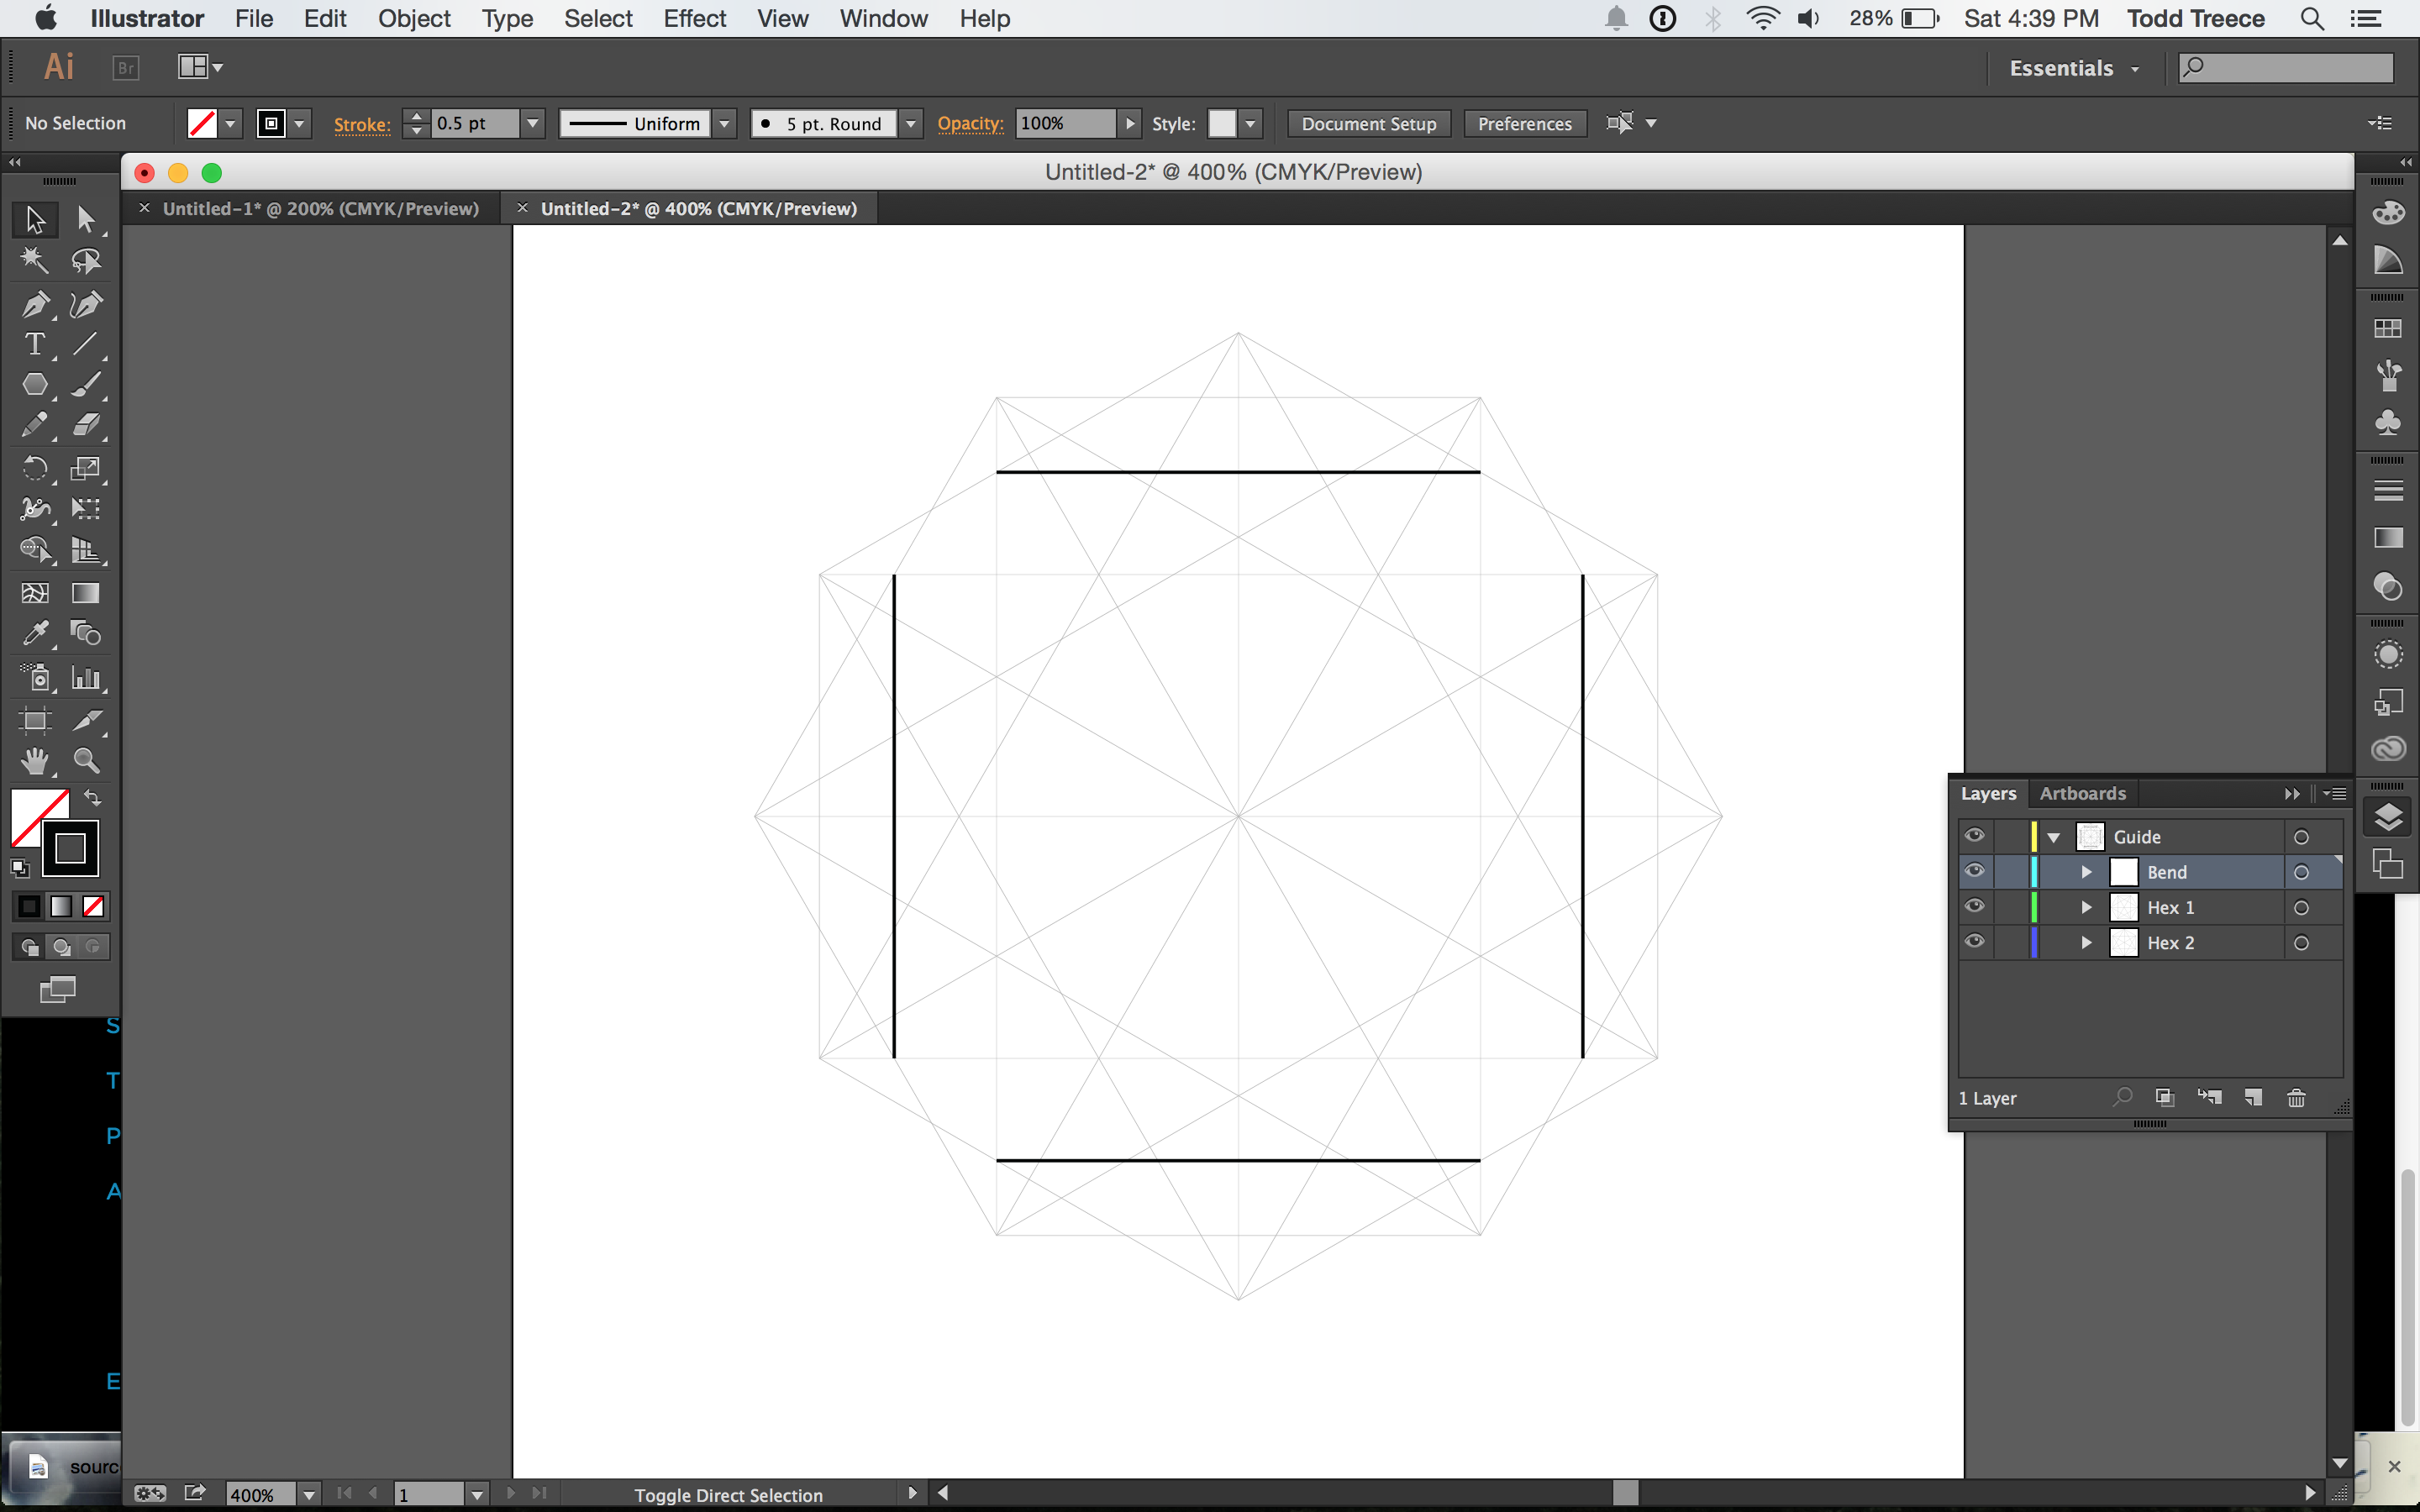 projects_Screen_Shot_2015-03-14_at_4.39.19_PM.png